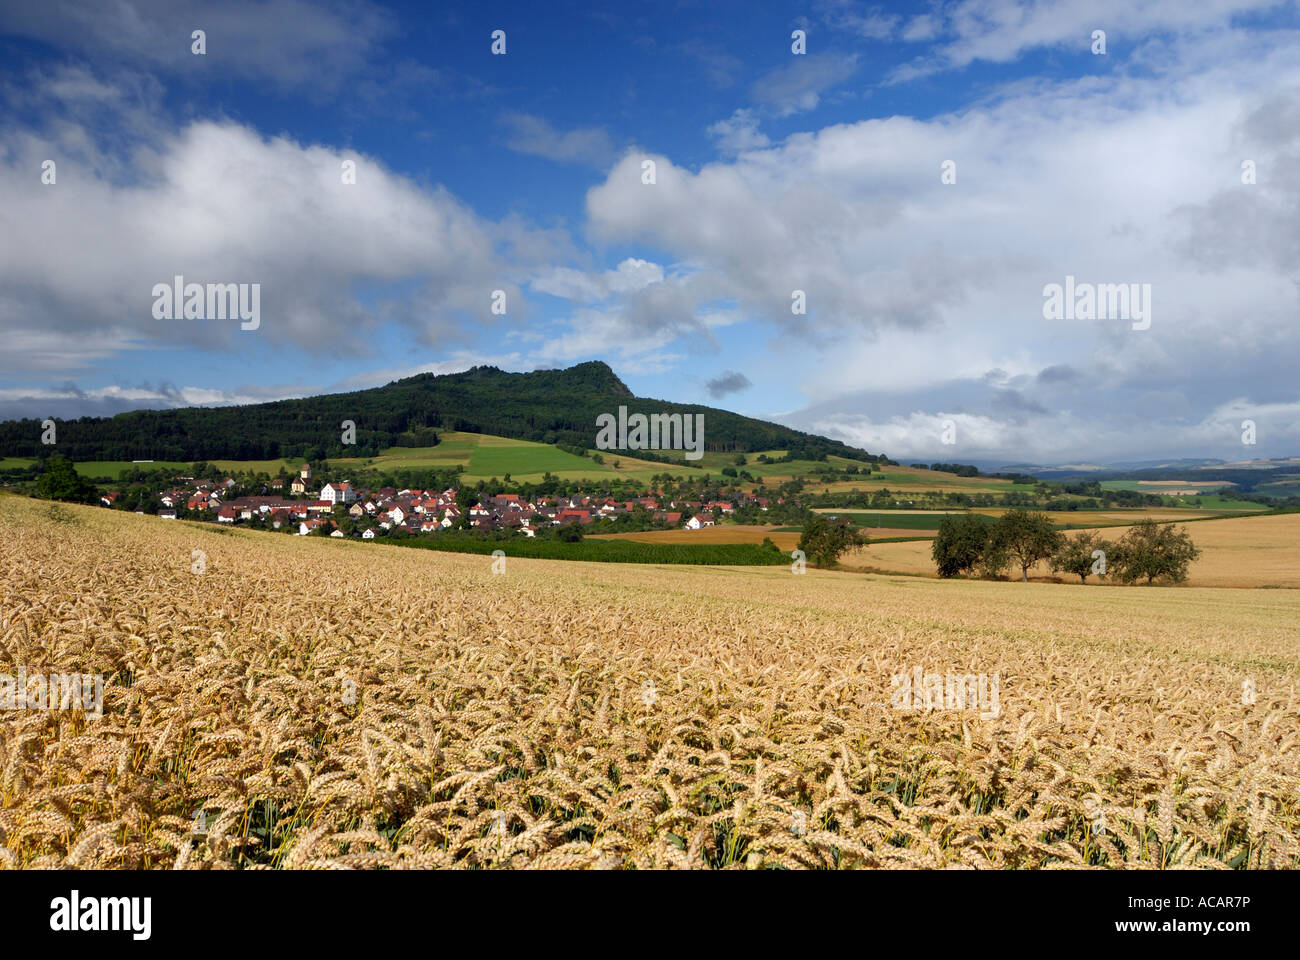 Wheat-field and the hegau volcano Hohenstoffeln in the background, Weiterdingen, Baden Wuerttemberg, Germany, Europe. - Stock Image